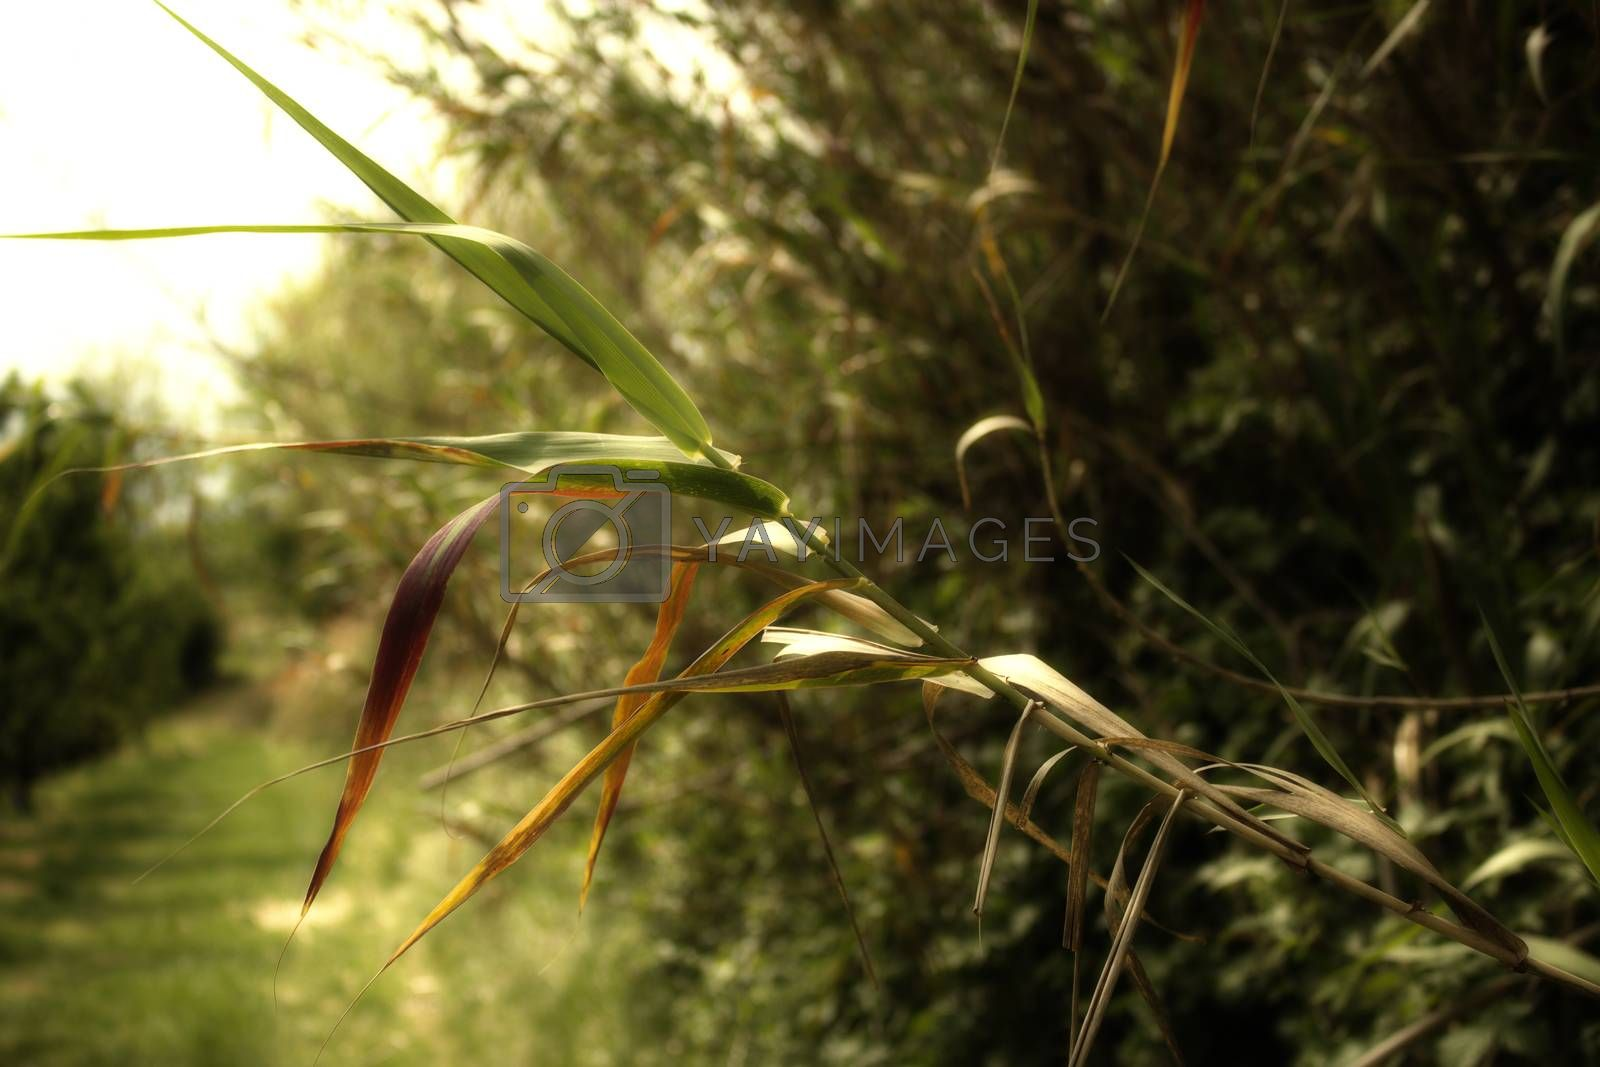 Giant cane on weeds background